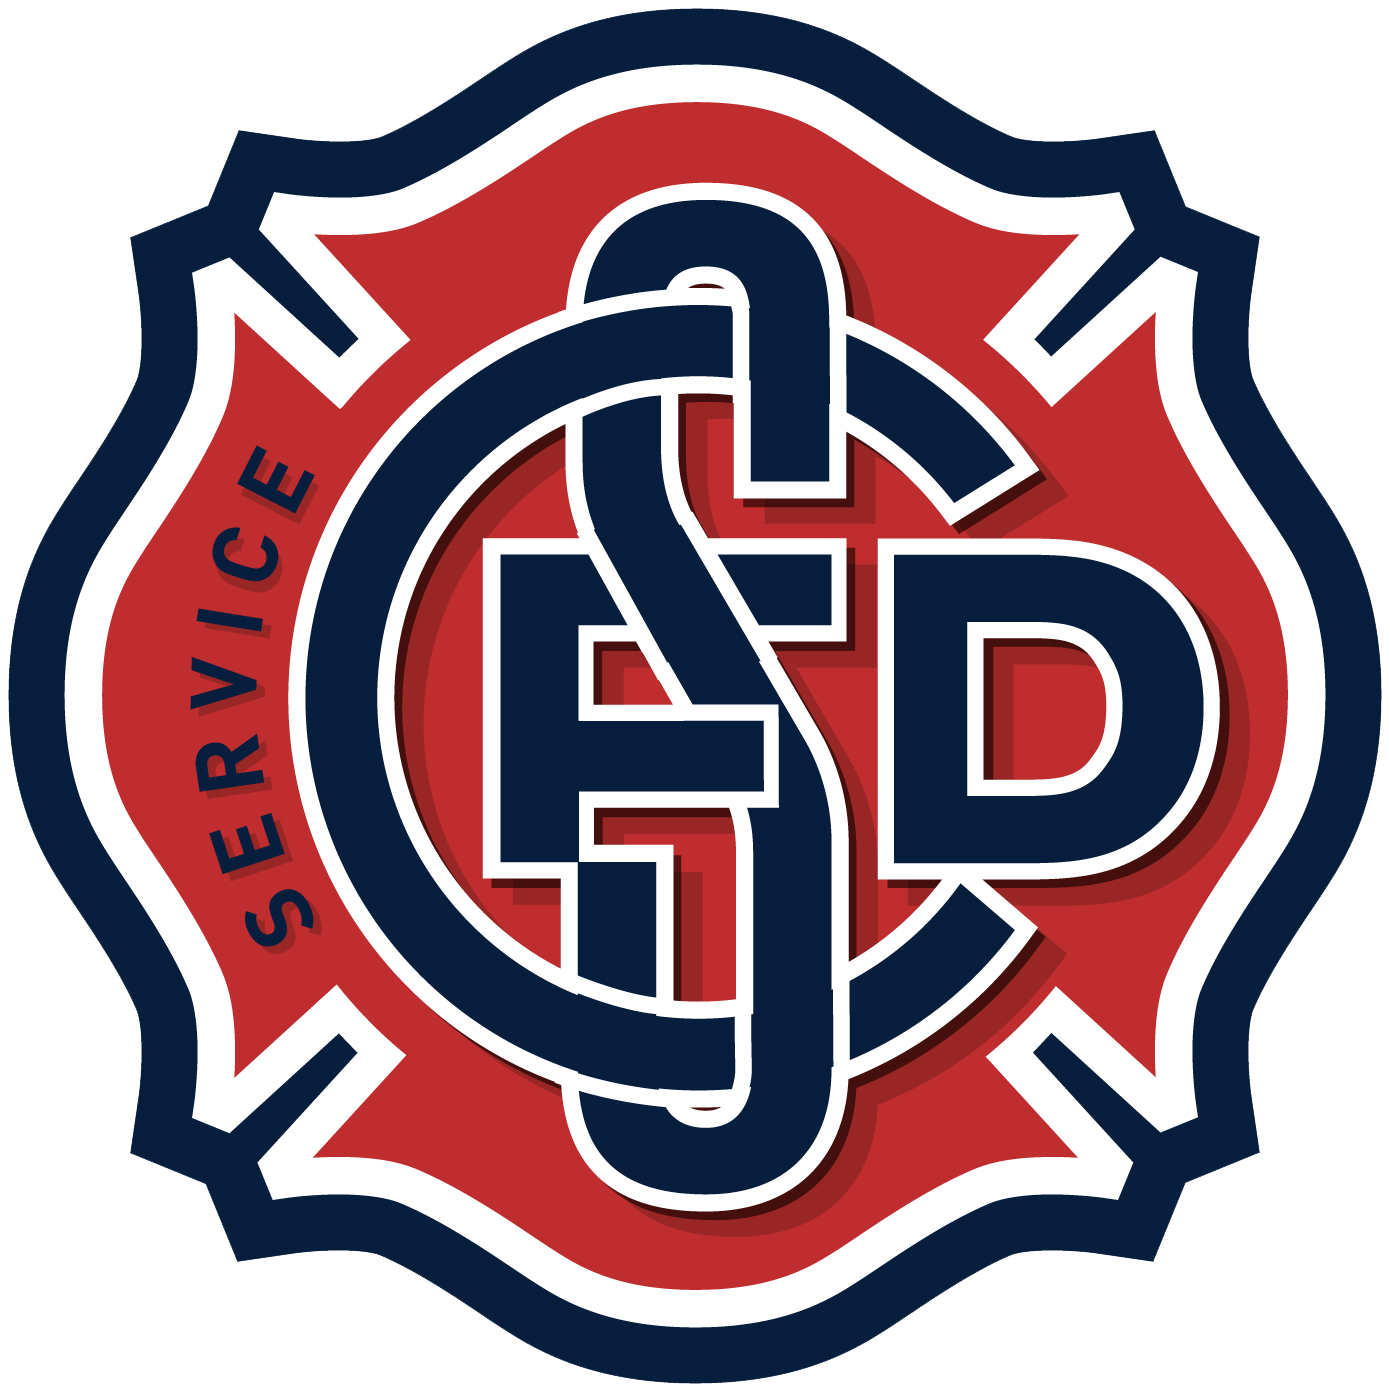 Free Chicago Fire Logo Png, Download Free Clip Art, Free.